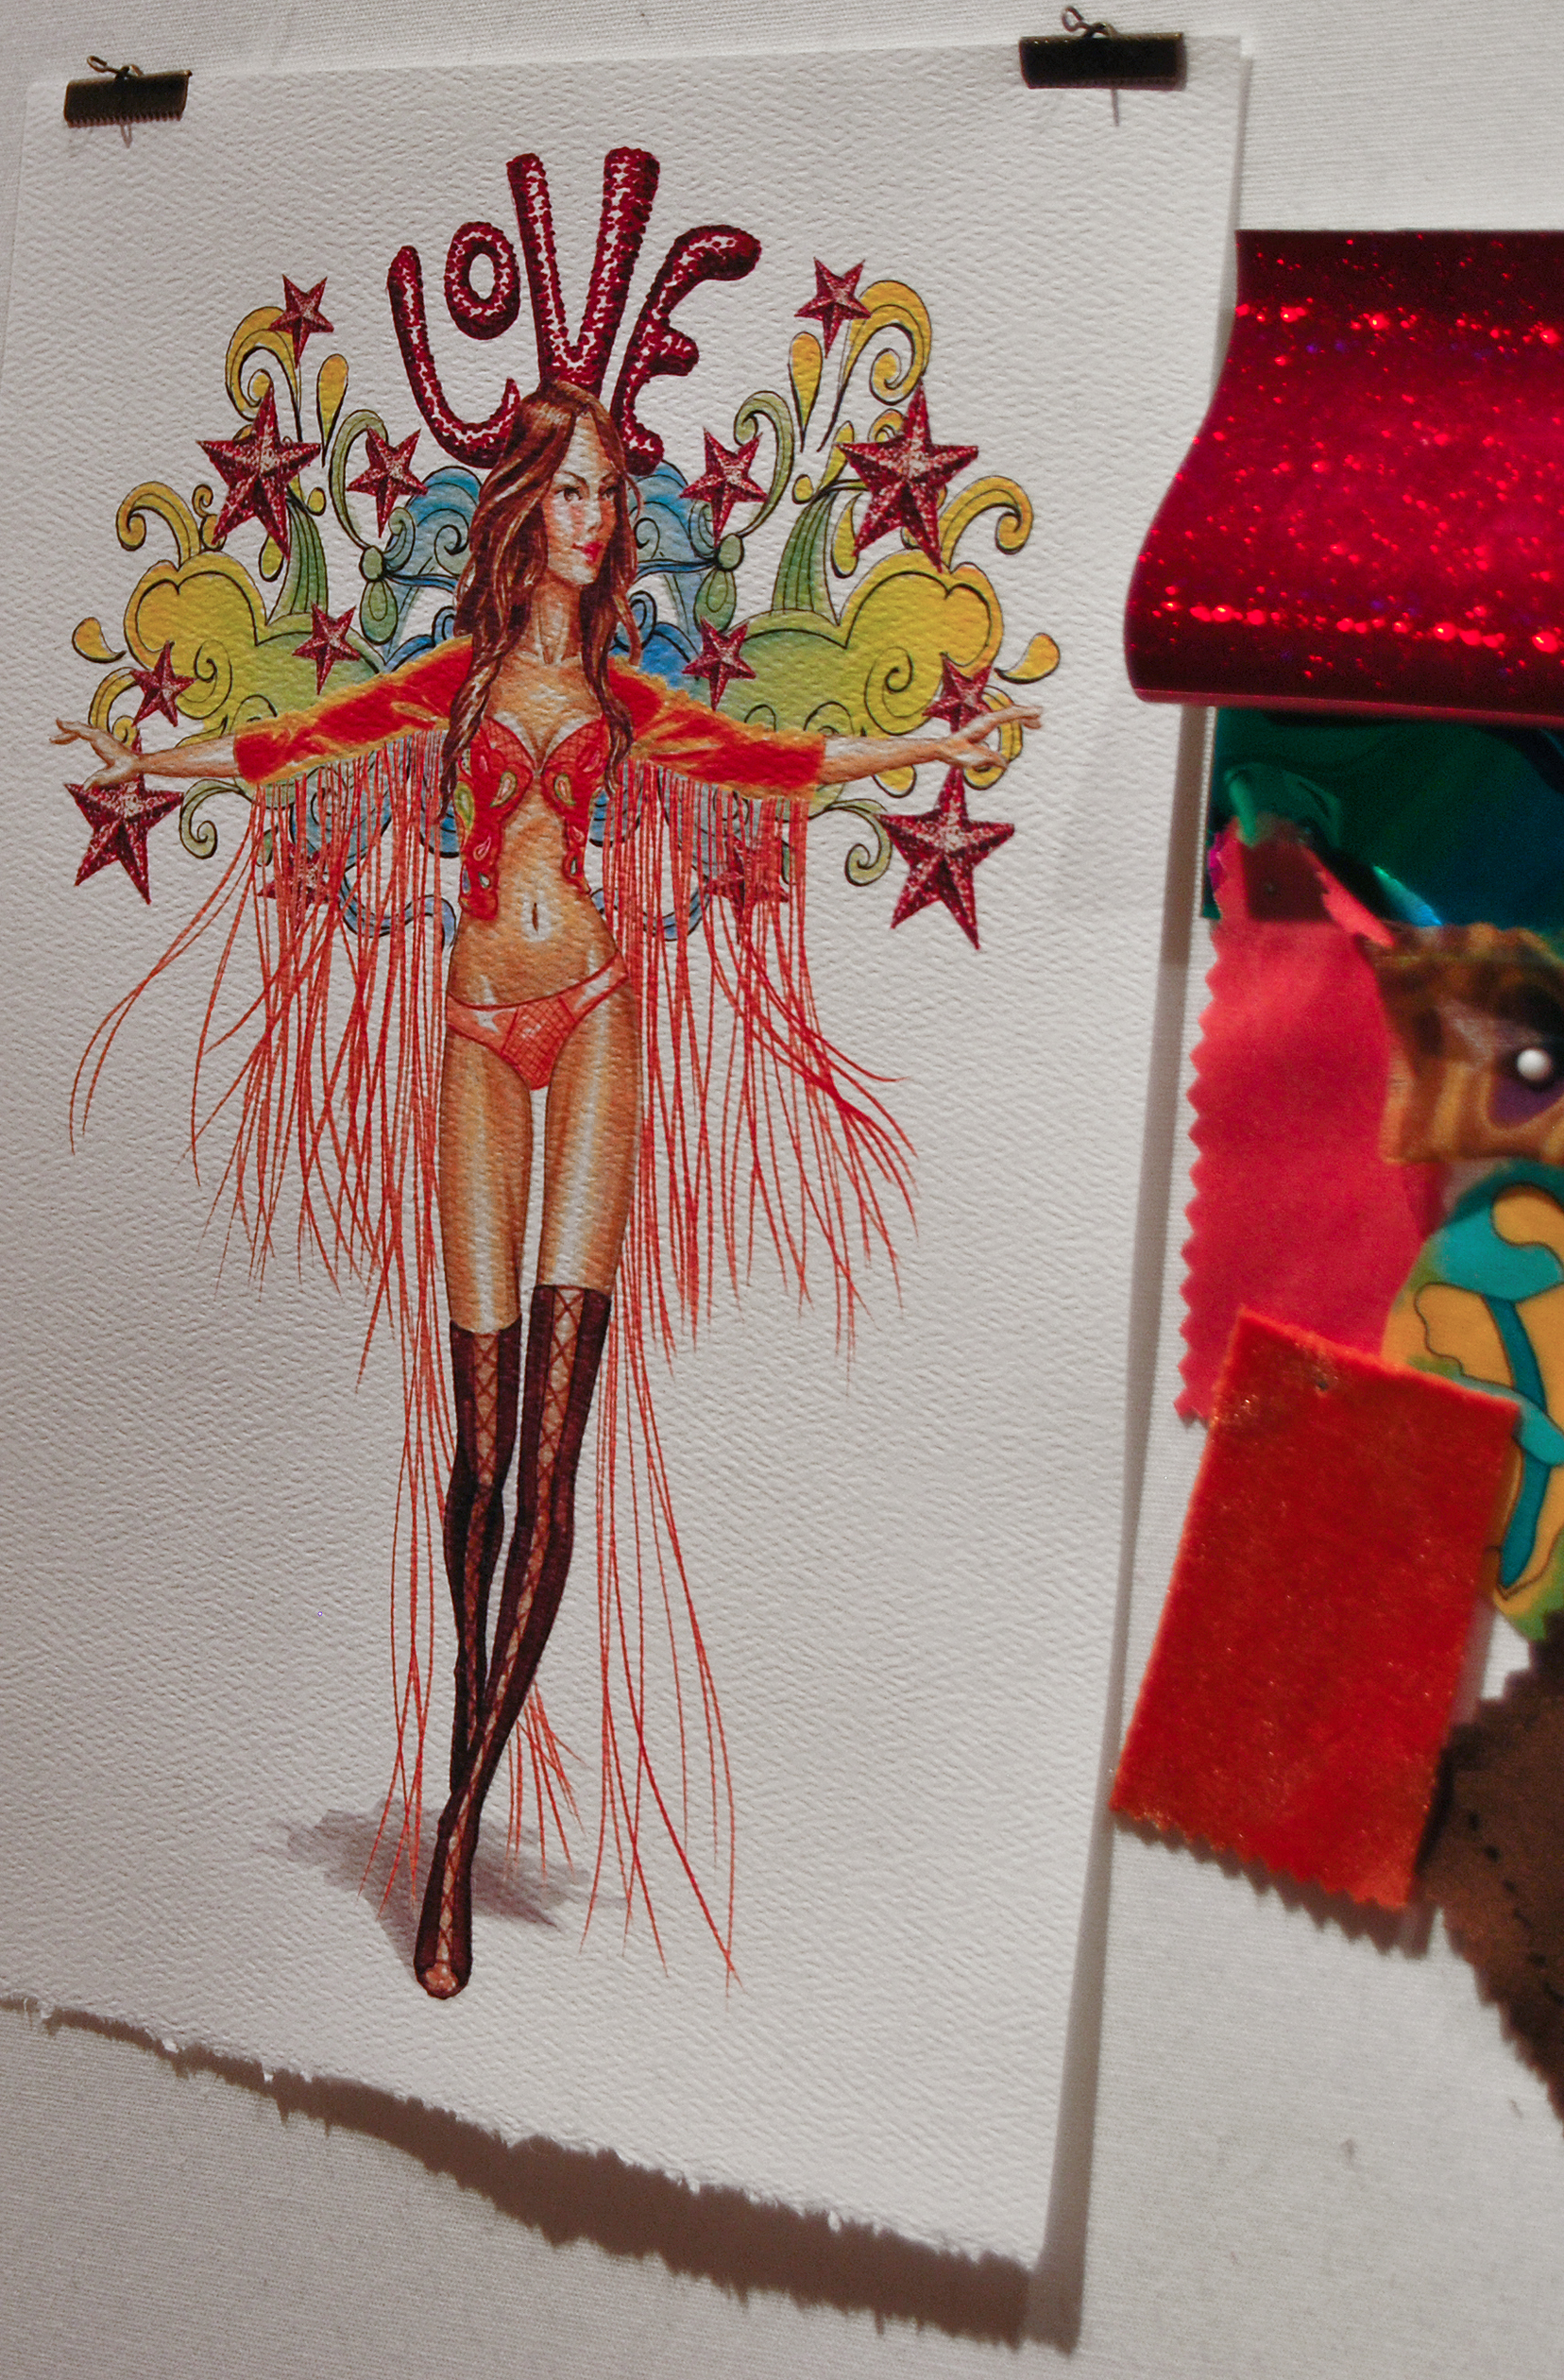 BOHO PSYCHEDELIC. Silk embroidered jacket with fringe sleeves and embellished paper sculpture wings